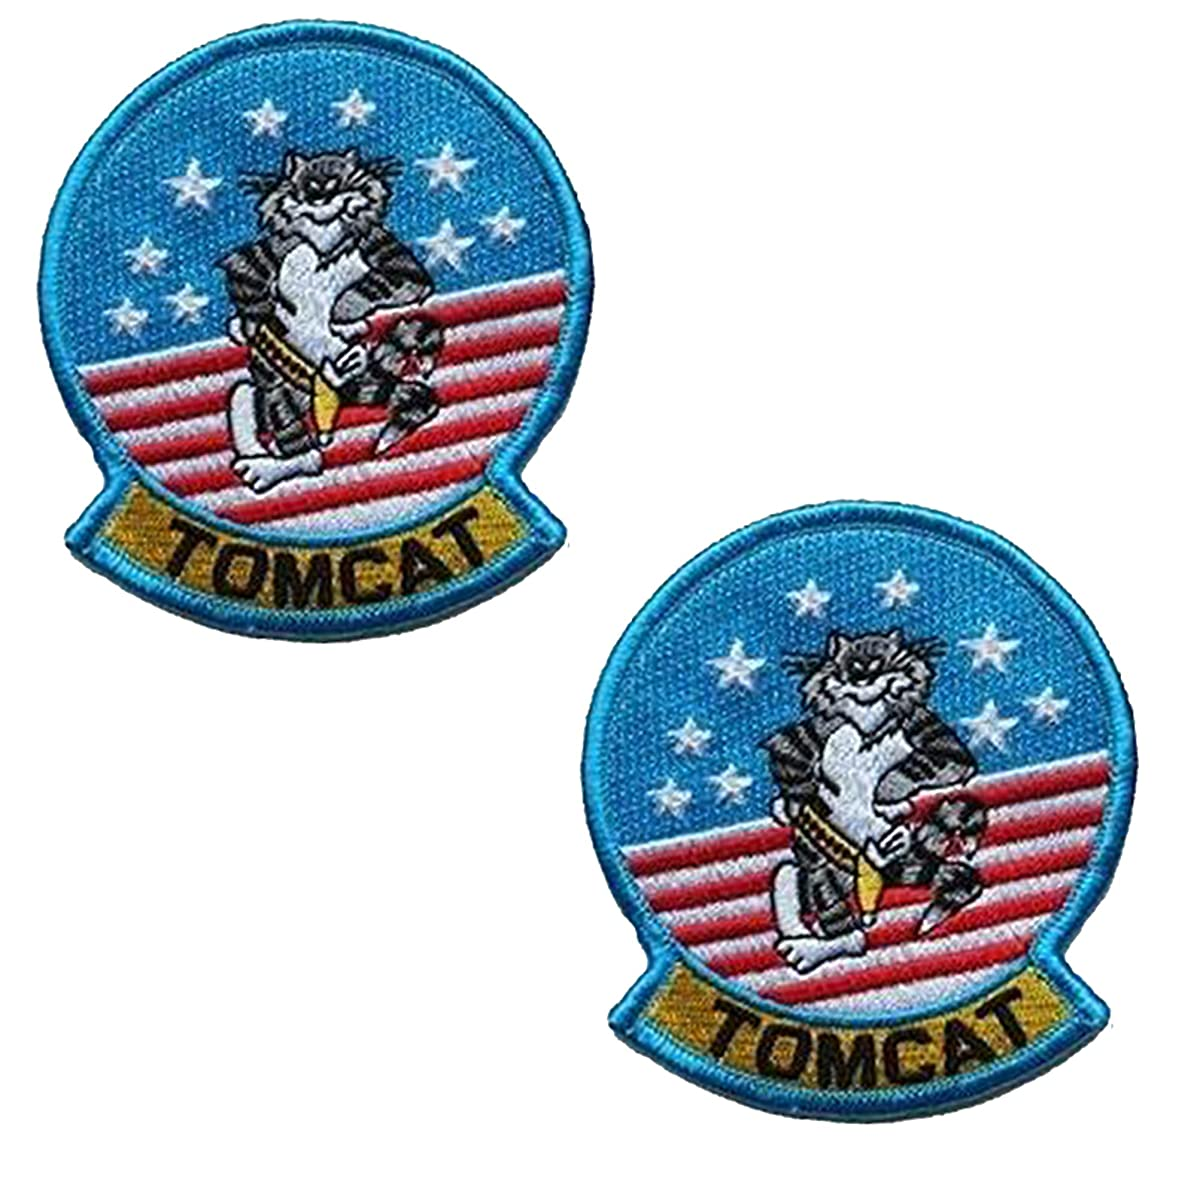 Tom Cat Top Gun Movie Costume Airforce Fighter Cosplay Costume Embroidered Patch Military Tactical Morale Fastener Hook Loop Backing Patches Appliques Badges 3.5 inch 2PCS